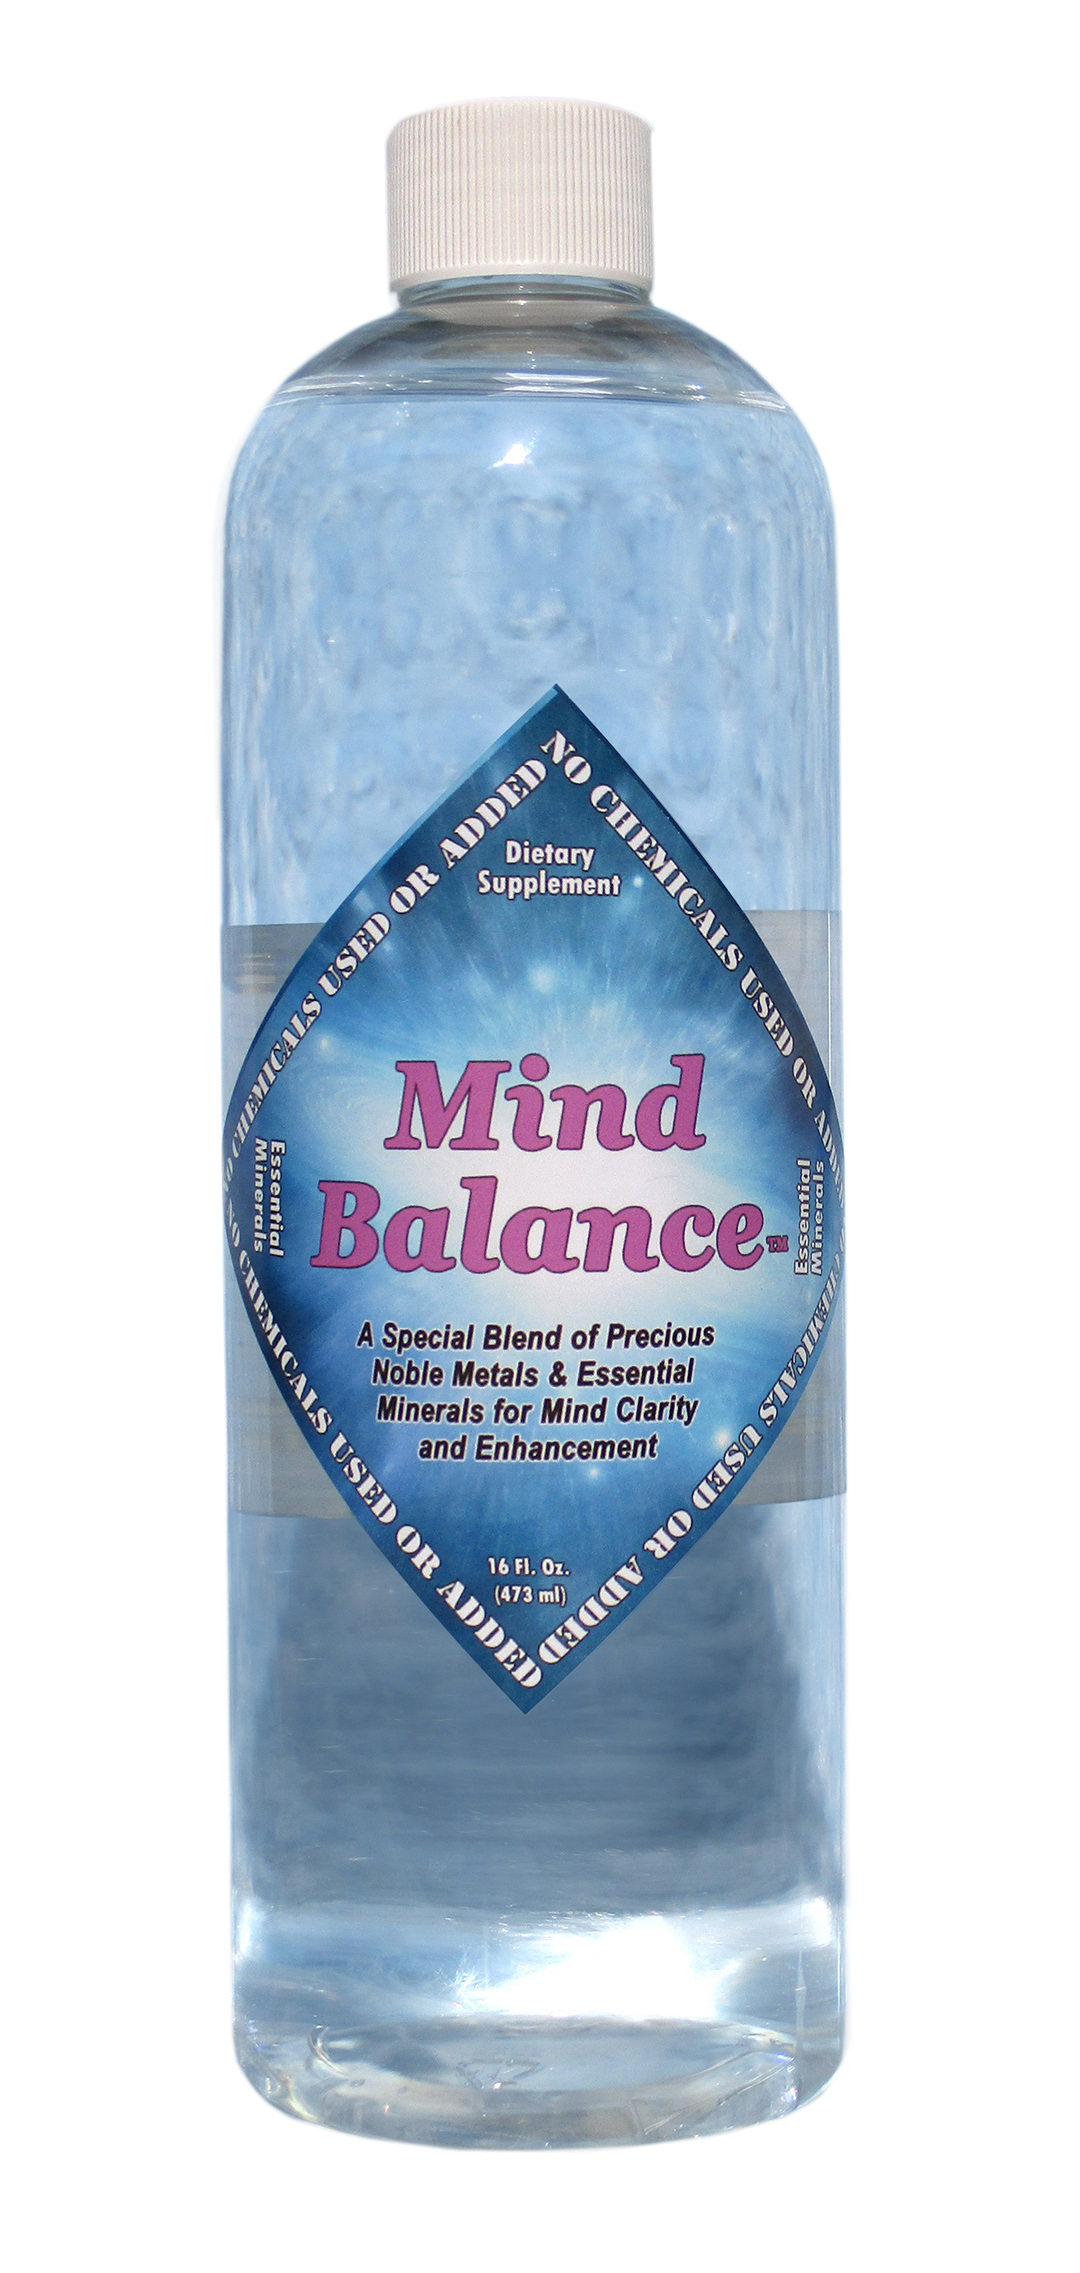 Mind Balance with Gold: 2000ppm Platinum 250ppm Iridium 250ppm Rhodium 250ppm Ruthenium 250ppm Magnesium: 2000ppm Pure Distilled Water